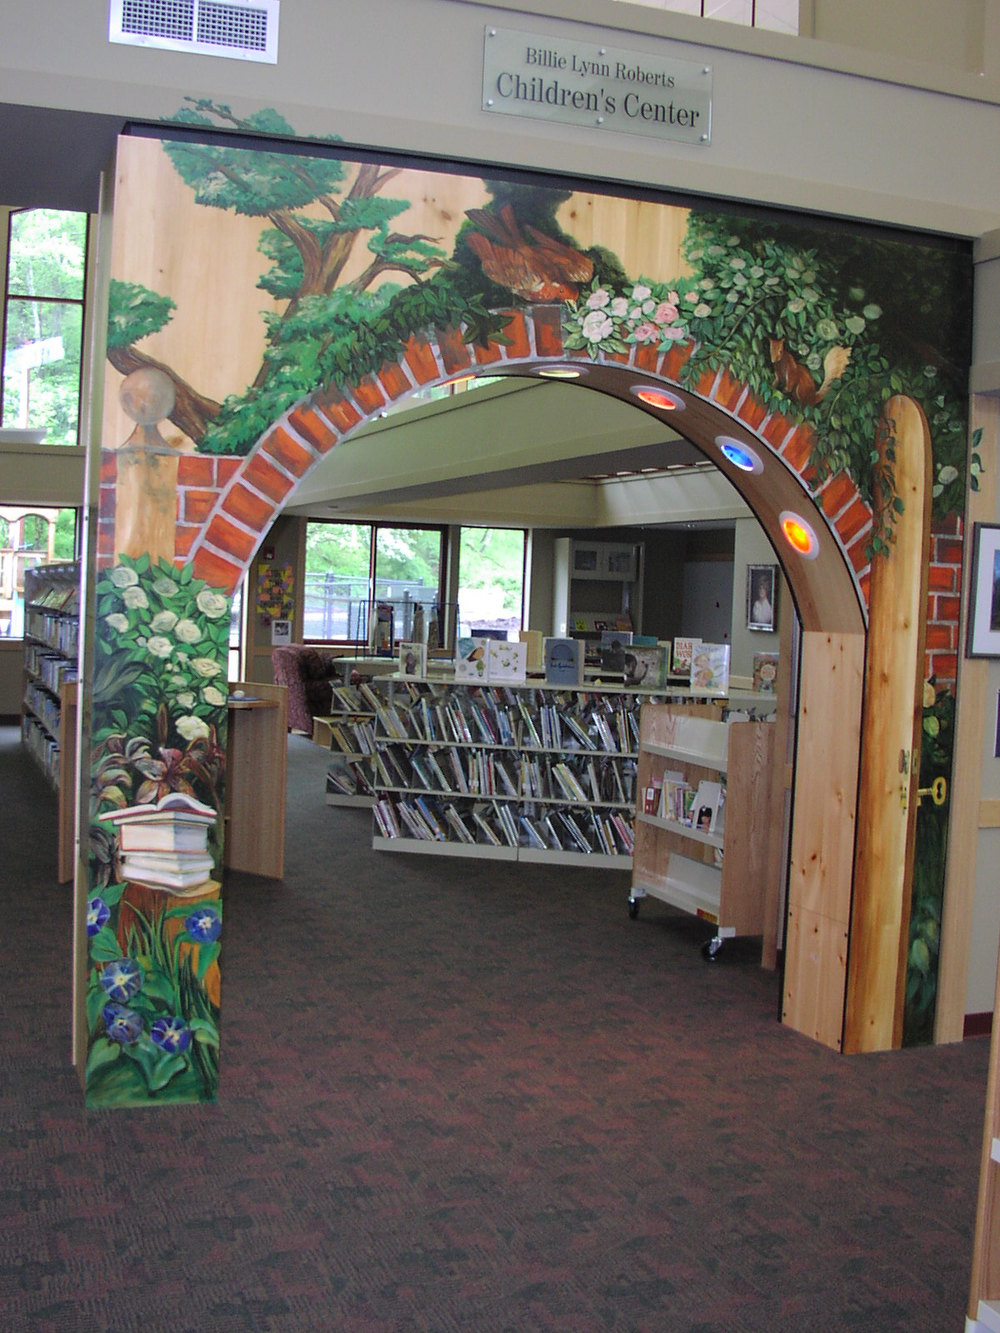 Arch murals for Madison County Public Library in Marshall